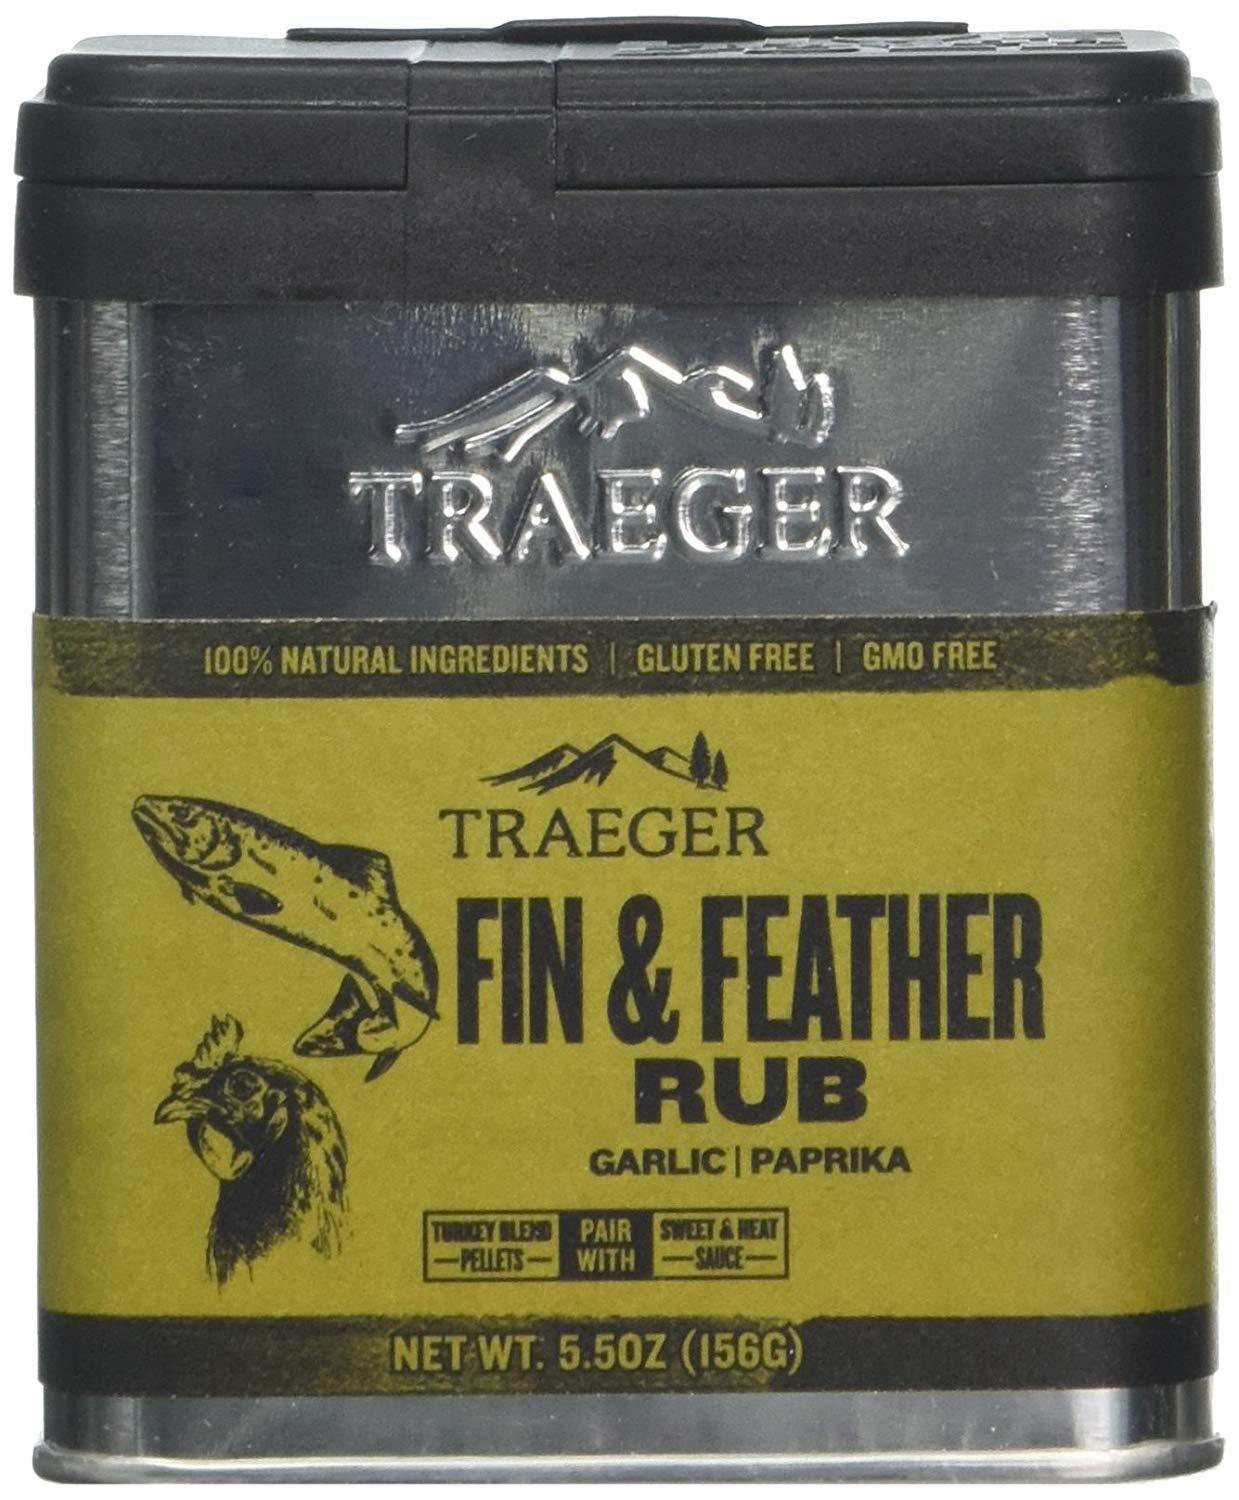 Traeger Barbecue Fin & Feather Rub